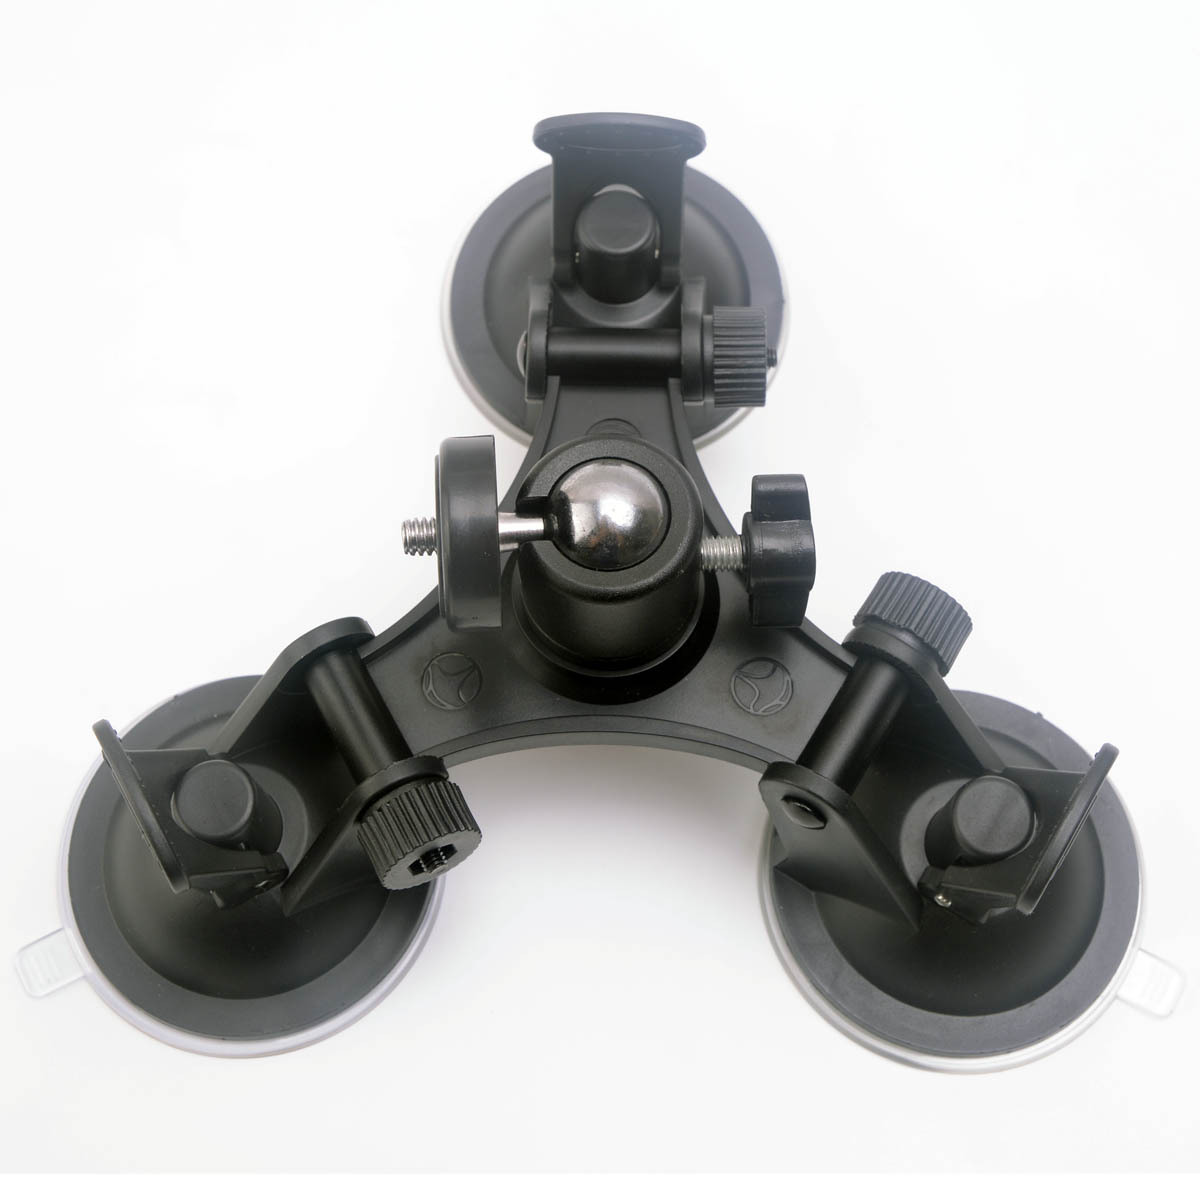 F15595 3x Suckers Fixation Low Angle Removable Suction Cup Tripod Mount for Surfboard Car for GOPRO HERO3/3+/4/5 Camera DV